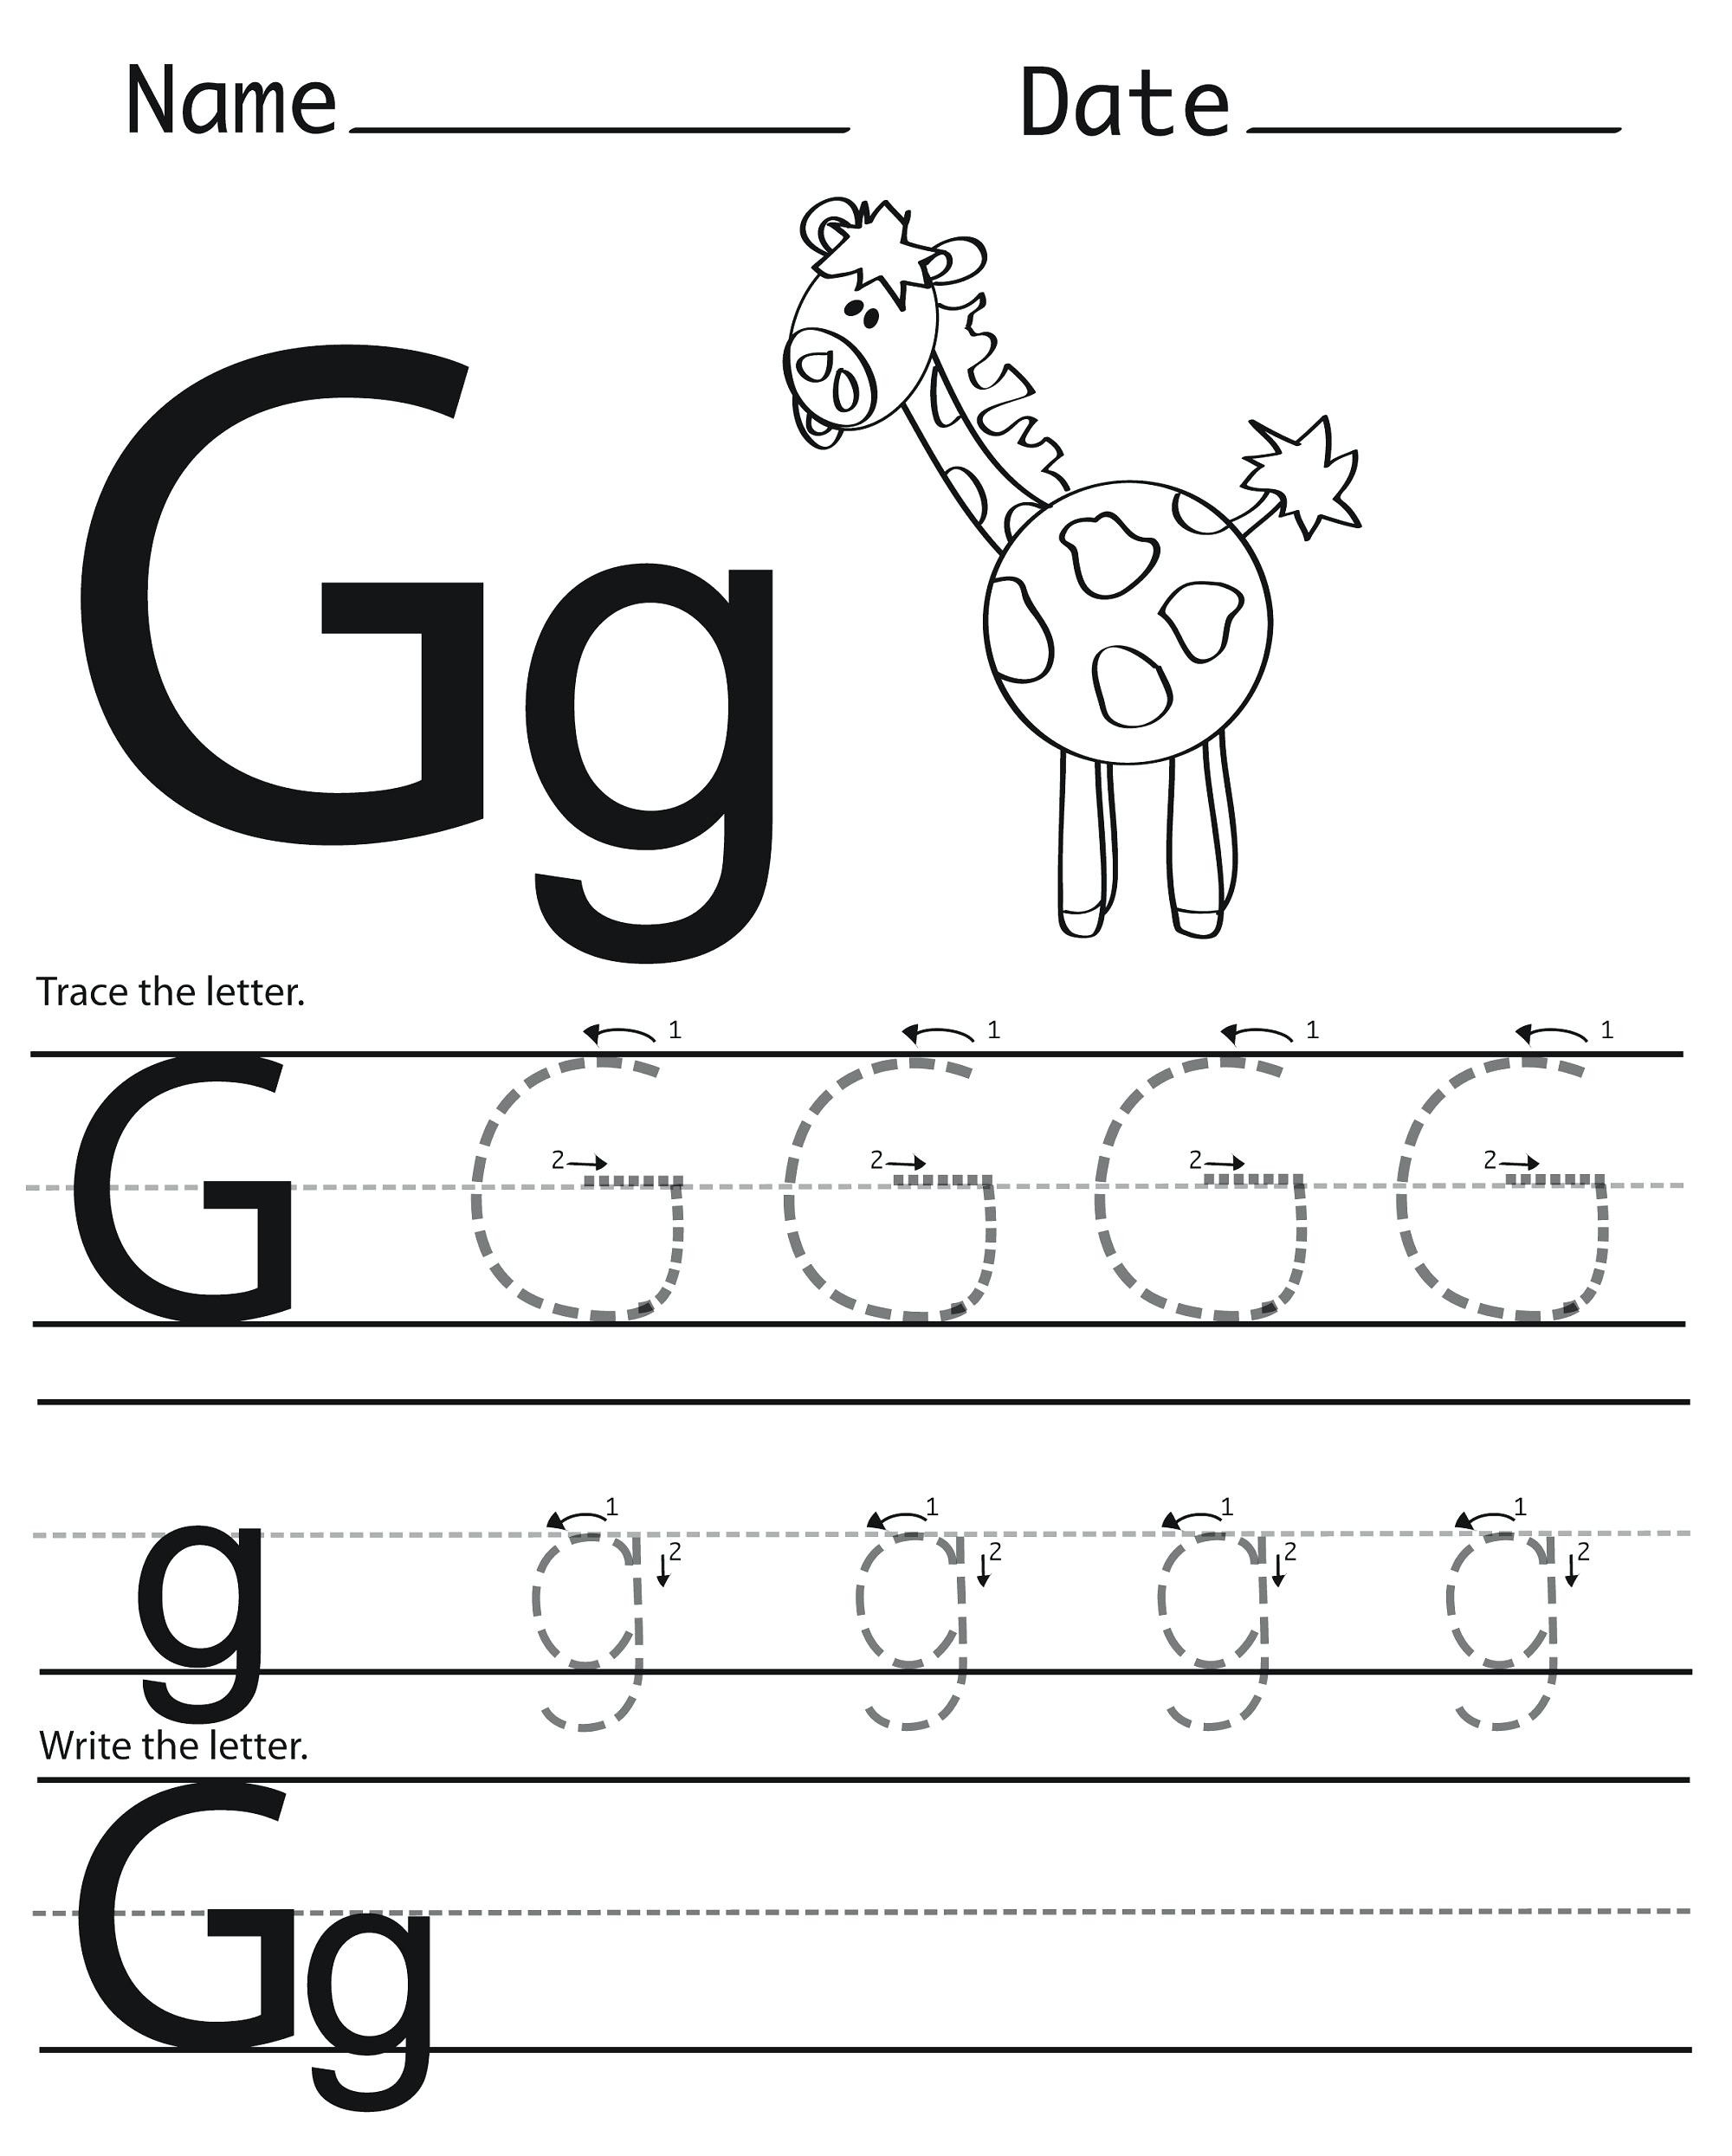 Letter G Tracing Worksheets Preschool Trace Letter G Trace Letter G Activity Trace Small Letter C